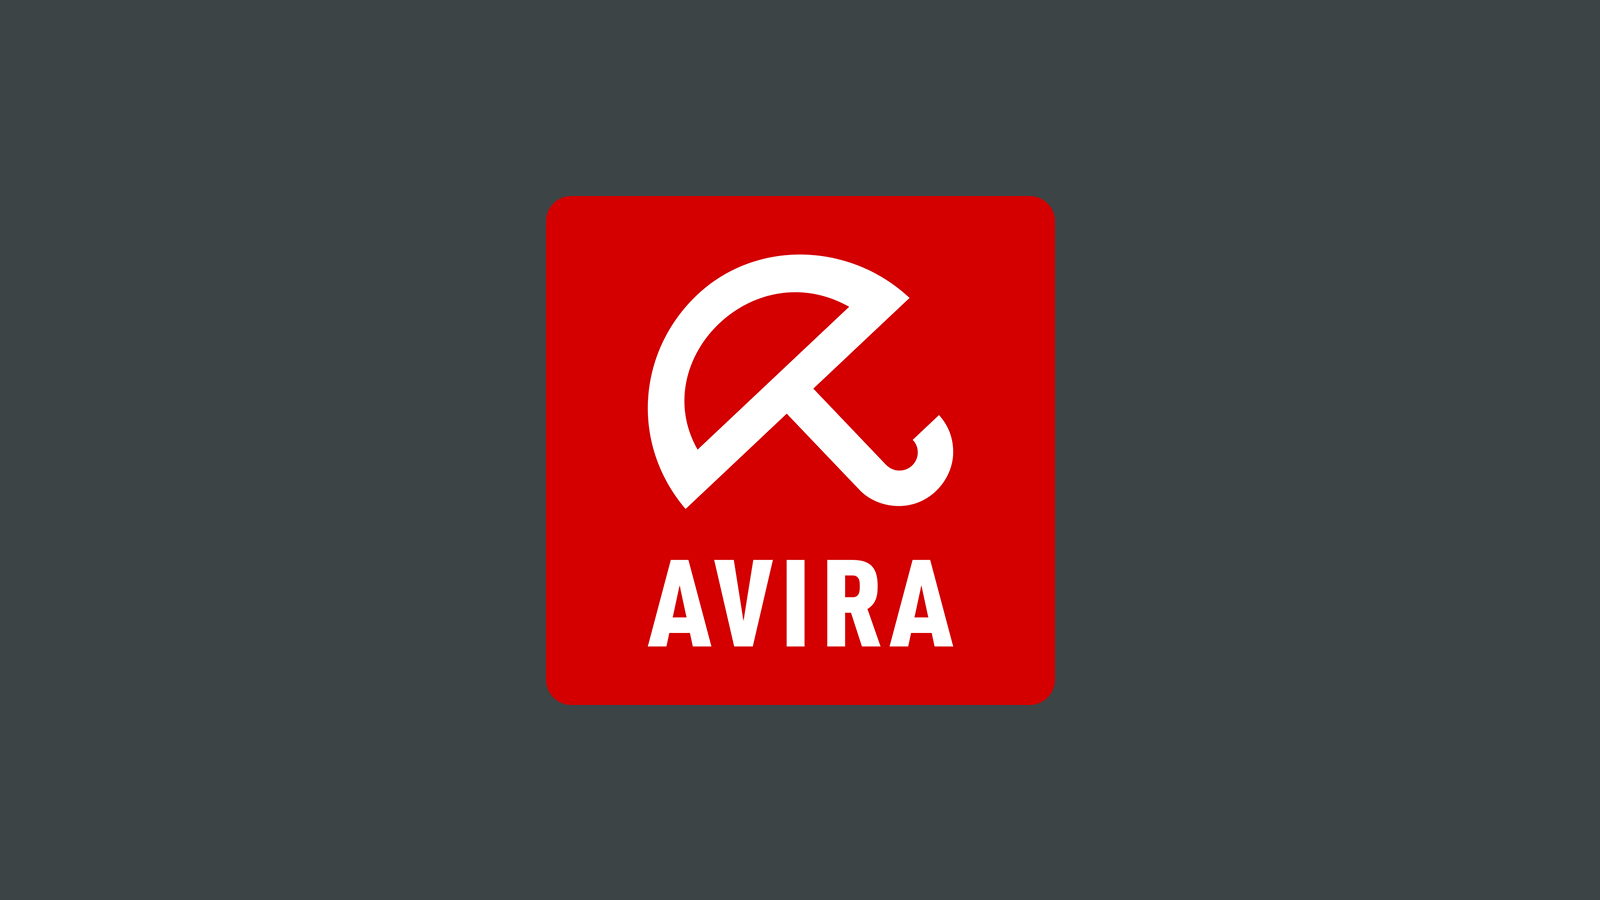 Avira License Key Voucher Pub 1600x900